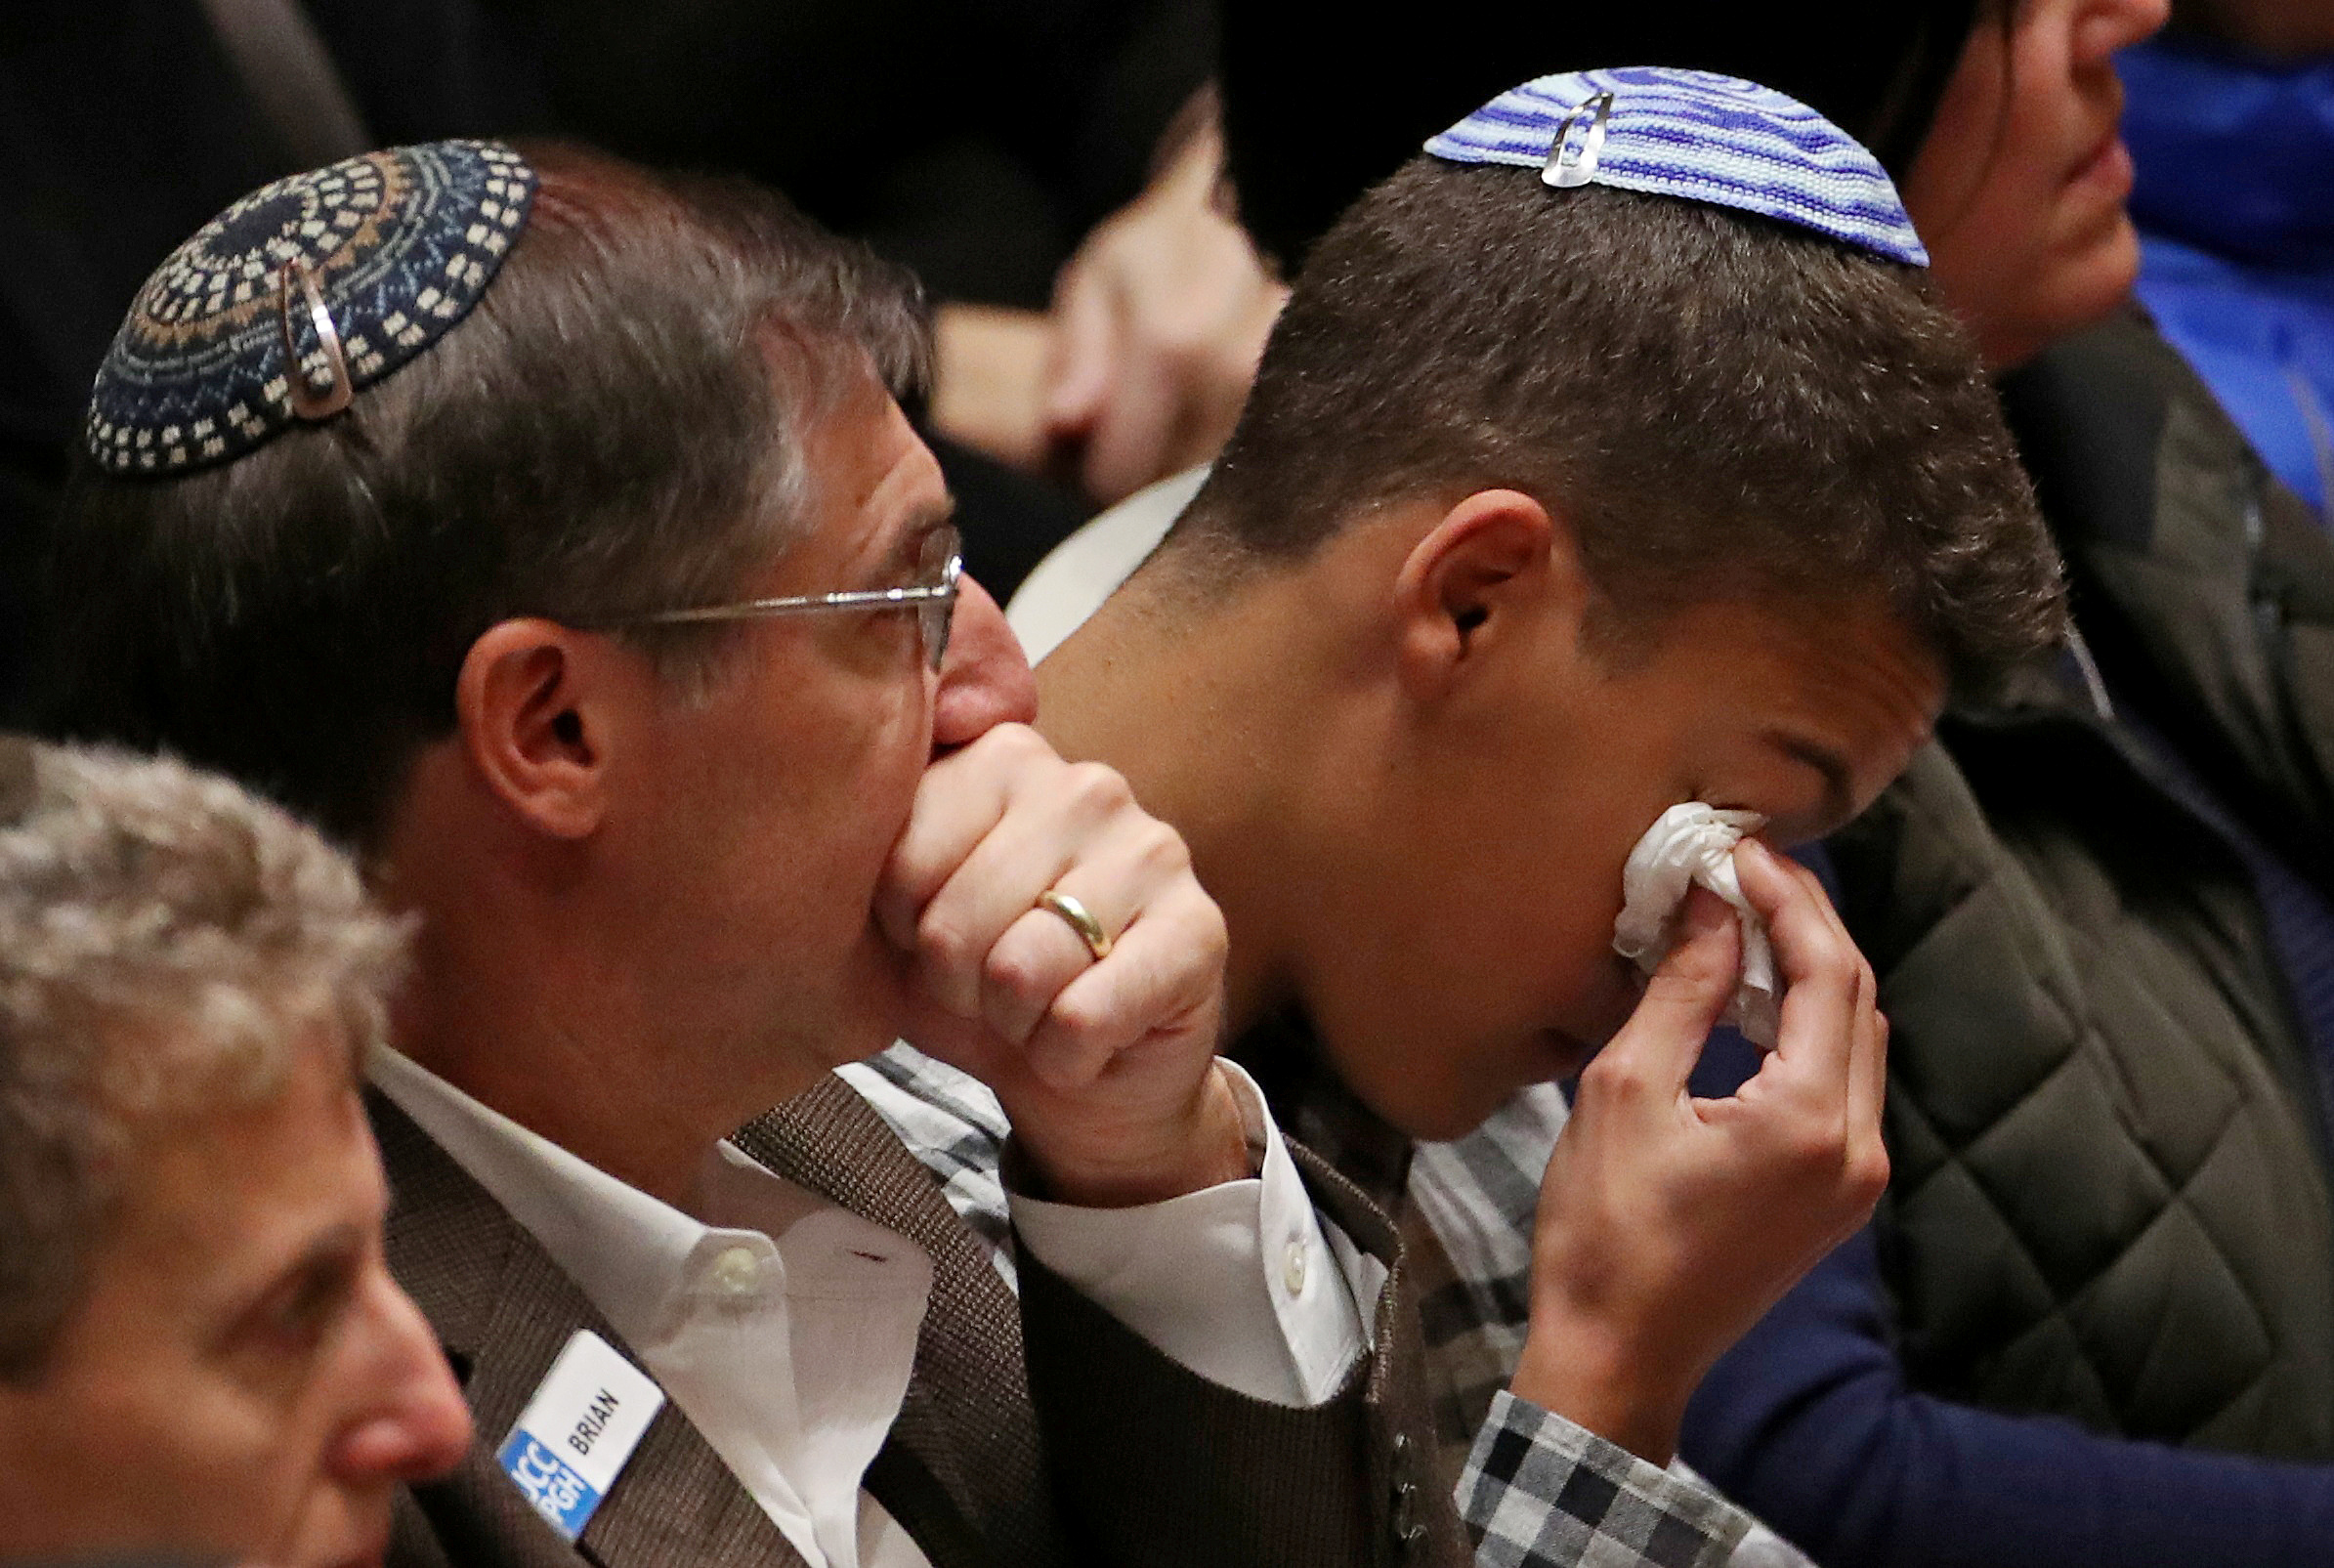 FILE PHOTO: Mourners react during a memorial service at the Sailors and Soldiers Memorial Hall of the University of Pittsburgh, a day after 11 worshippers were shot dead at a Jewish synagogue in Pittsburgh, Pennsylvania, U.S., October 28, 2018. REUTERS/Cathal McNaughton